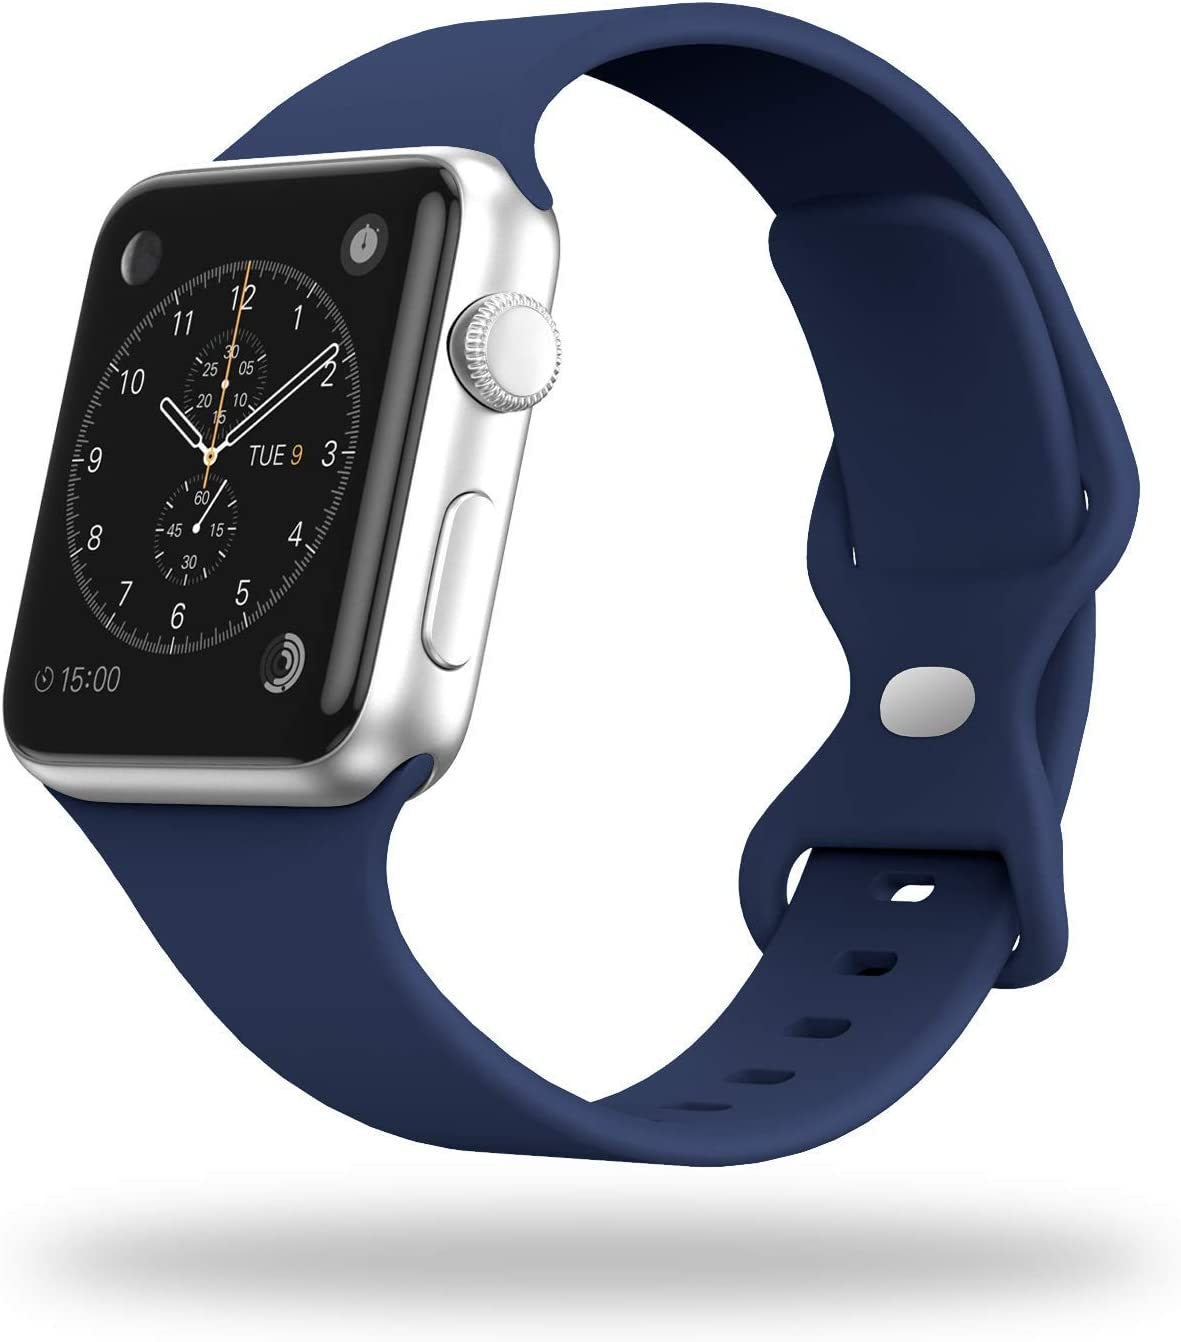 STG Smart Watch Band Compatible with Apple Watch Band 38mm 40mm 42mm 44mm, Soft Silicone Replacement Sport Strap Compatible for iWatch SE Series 6/5/4/3/2/1 (38/40mm, Midnight Blue)